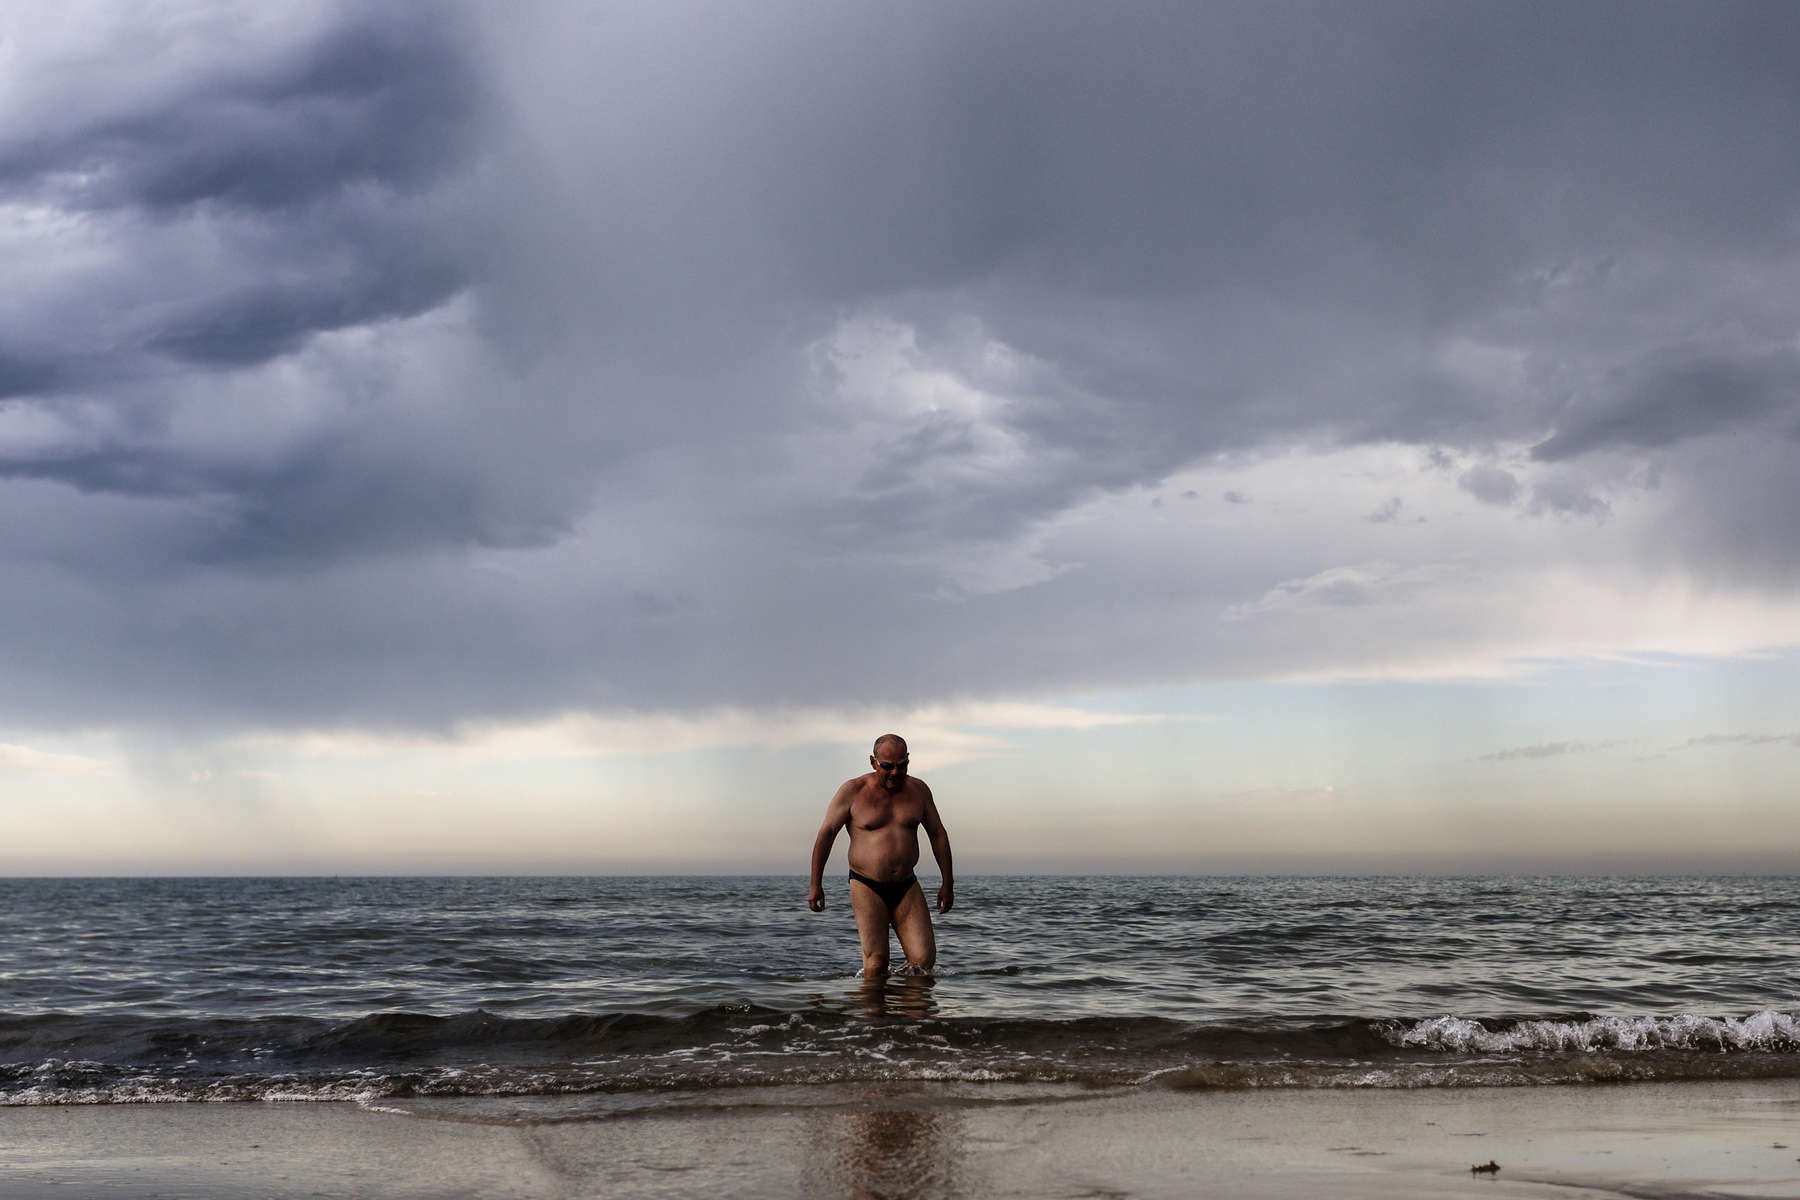 MELBOURNE, NEW SOUTH WALES - DECEMBER 24:  A man wades through the shallows at Mentone Beach as a summer storm rolls across the city. December 24, 2016 in Melbourne, Australia.  (Photo by Brook Mitchell/Fairfax Media)